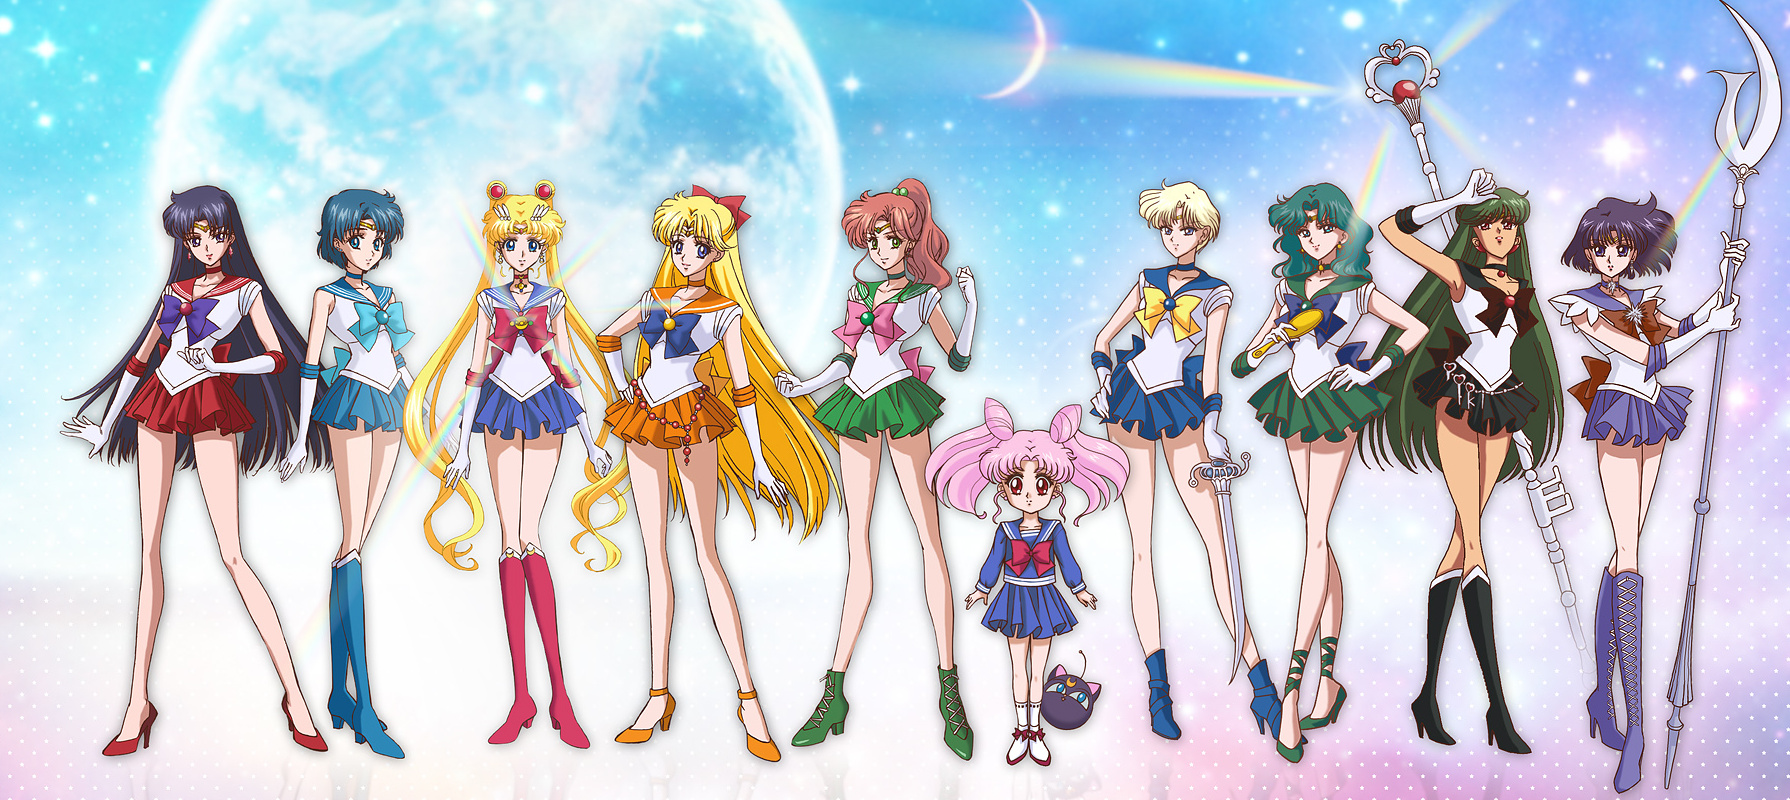 Amazing Wallpaper Macbook Sailor Moon - SLA9vr  Trends_301294.jpg